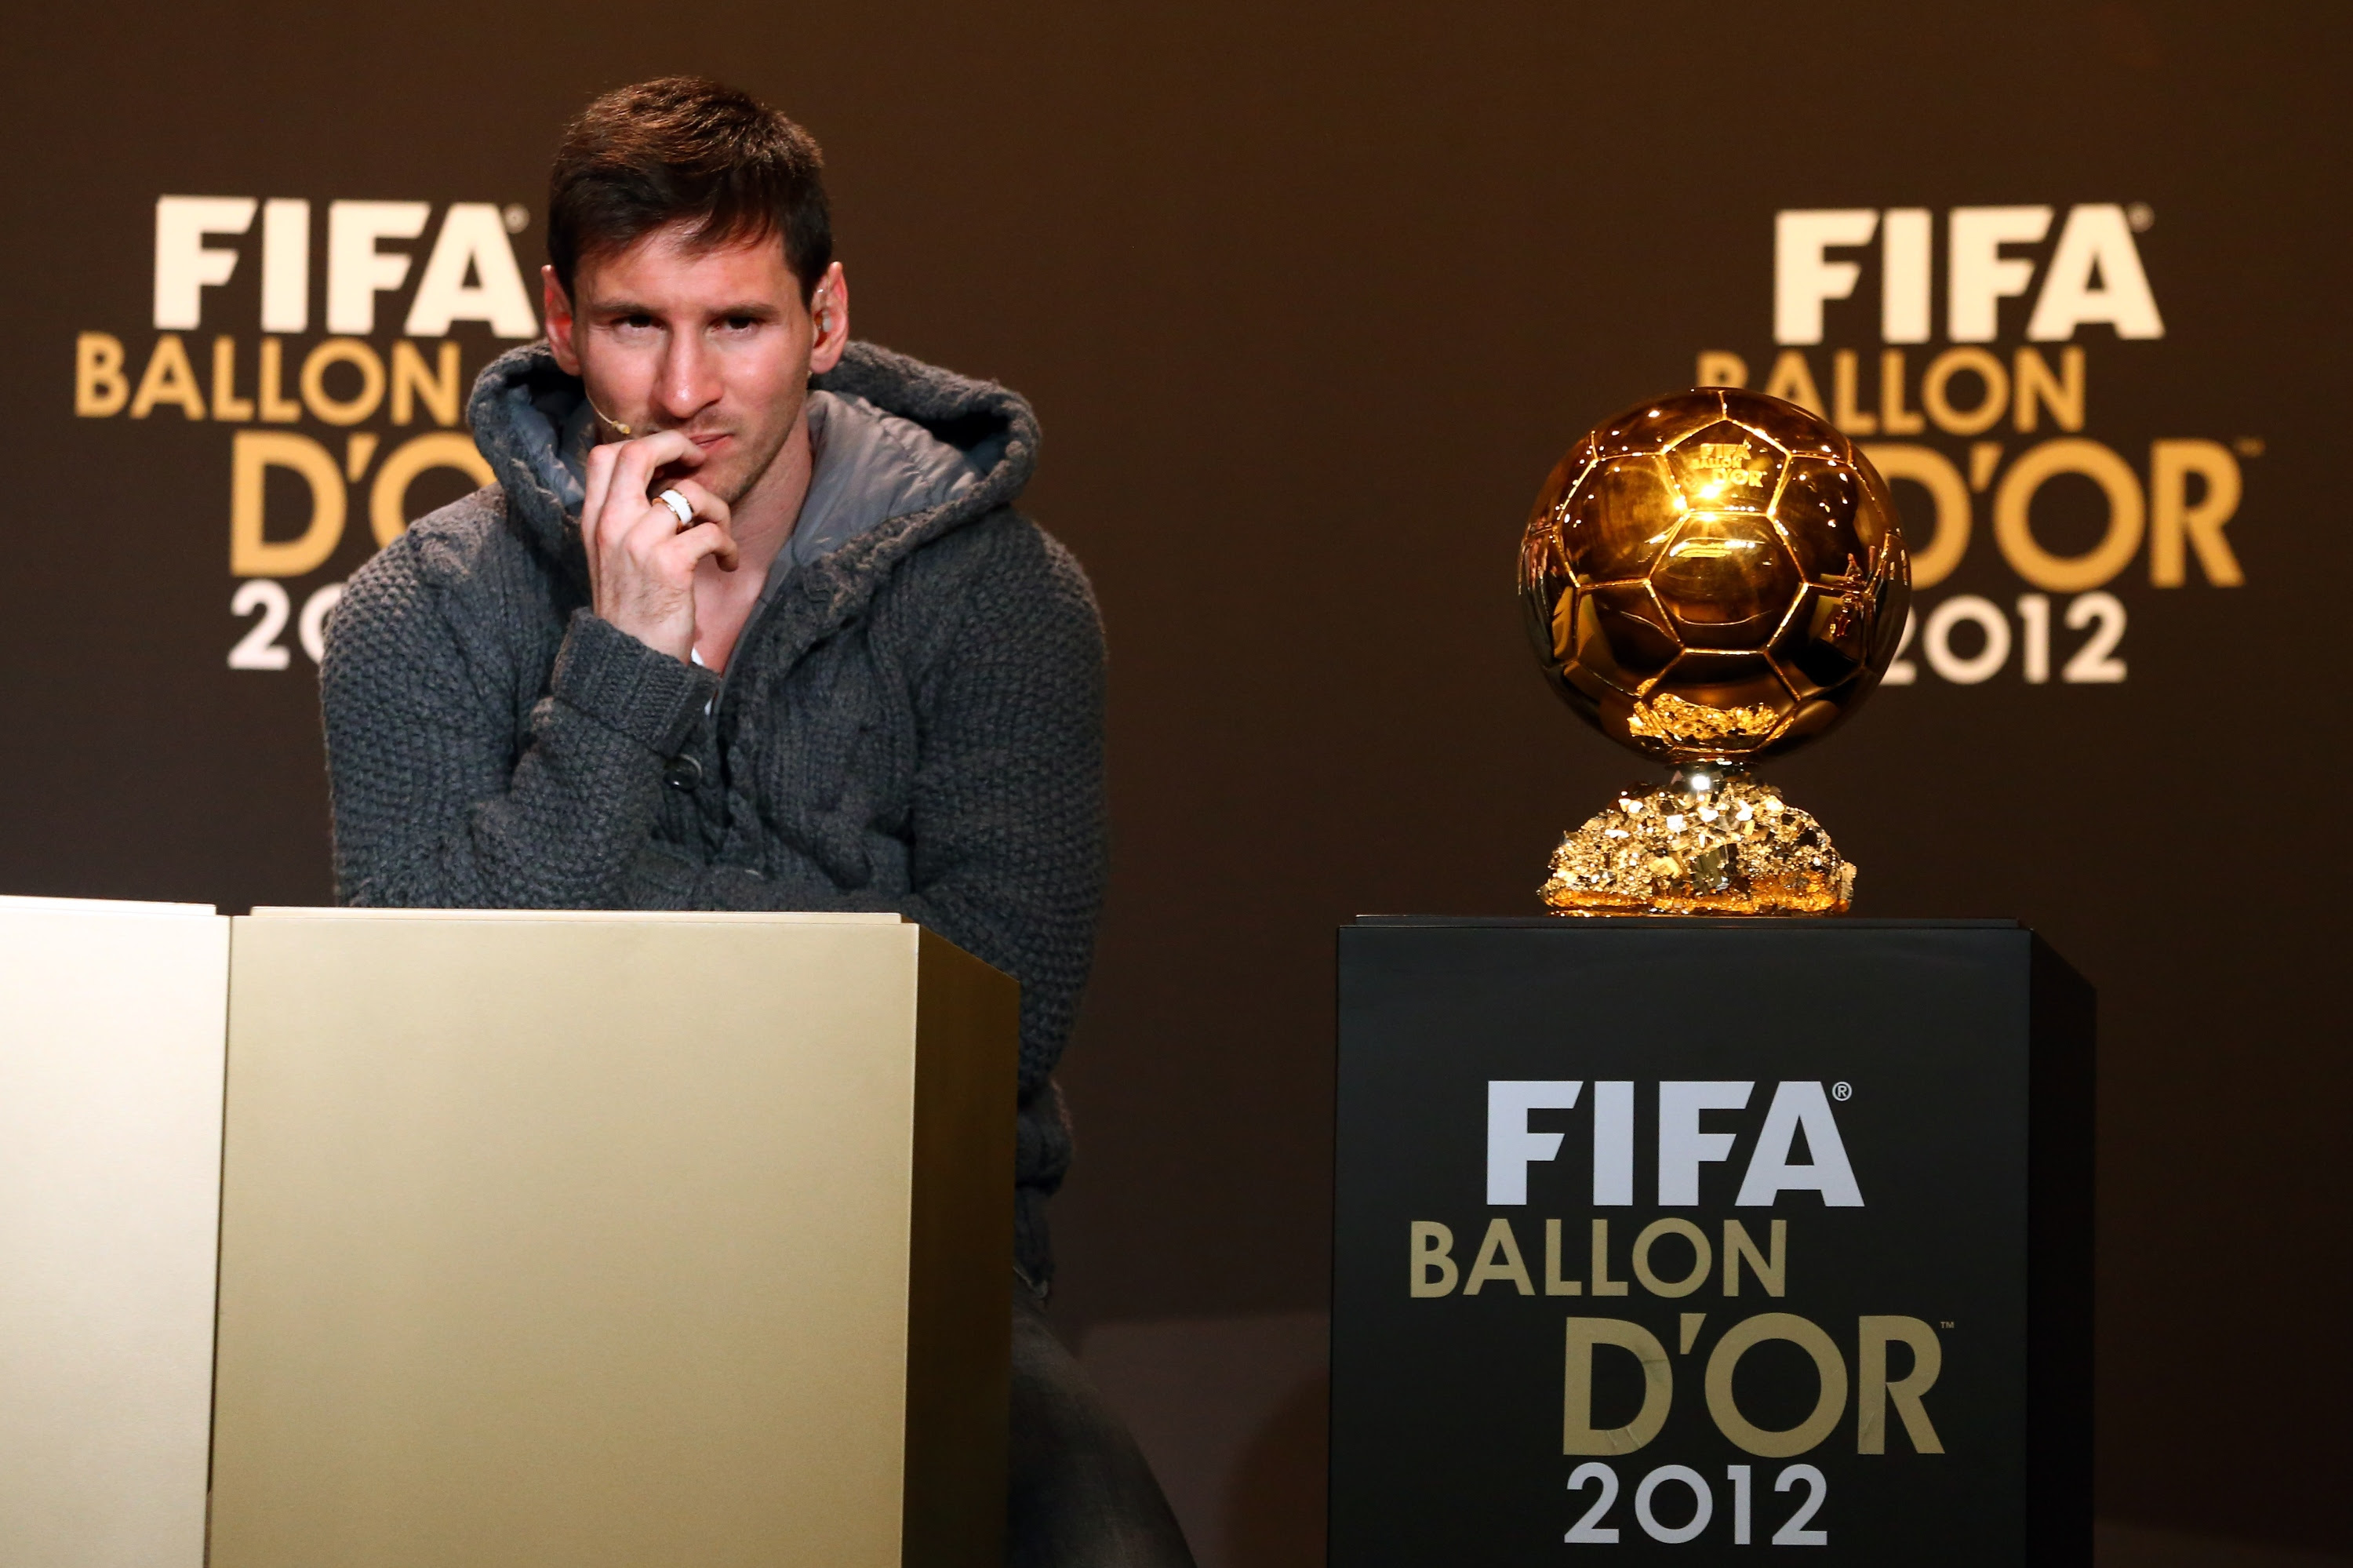 http://media.zenfs.com/en_us/News/gettyimages.com/fifa-ballon-dor-gala-2012-20130107-074213-320.jpg